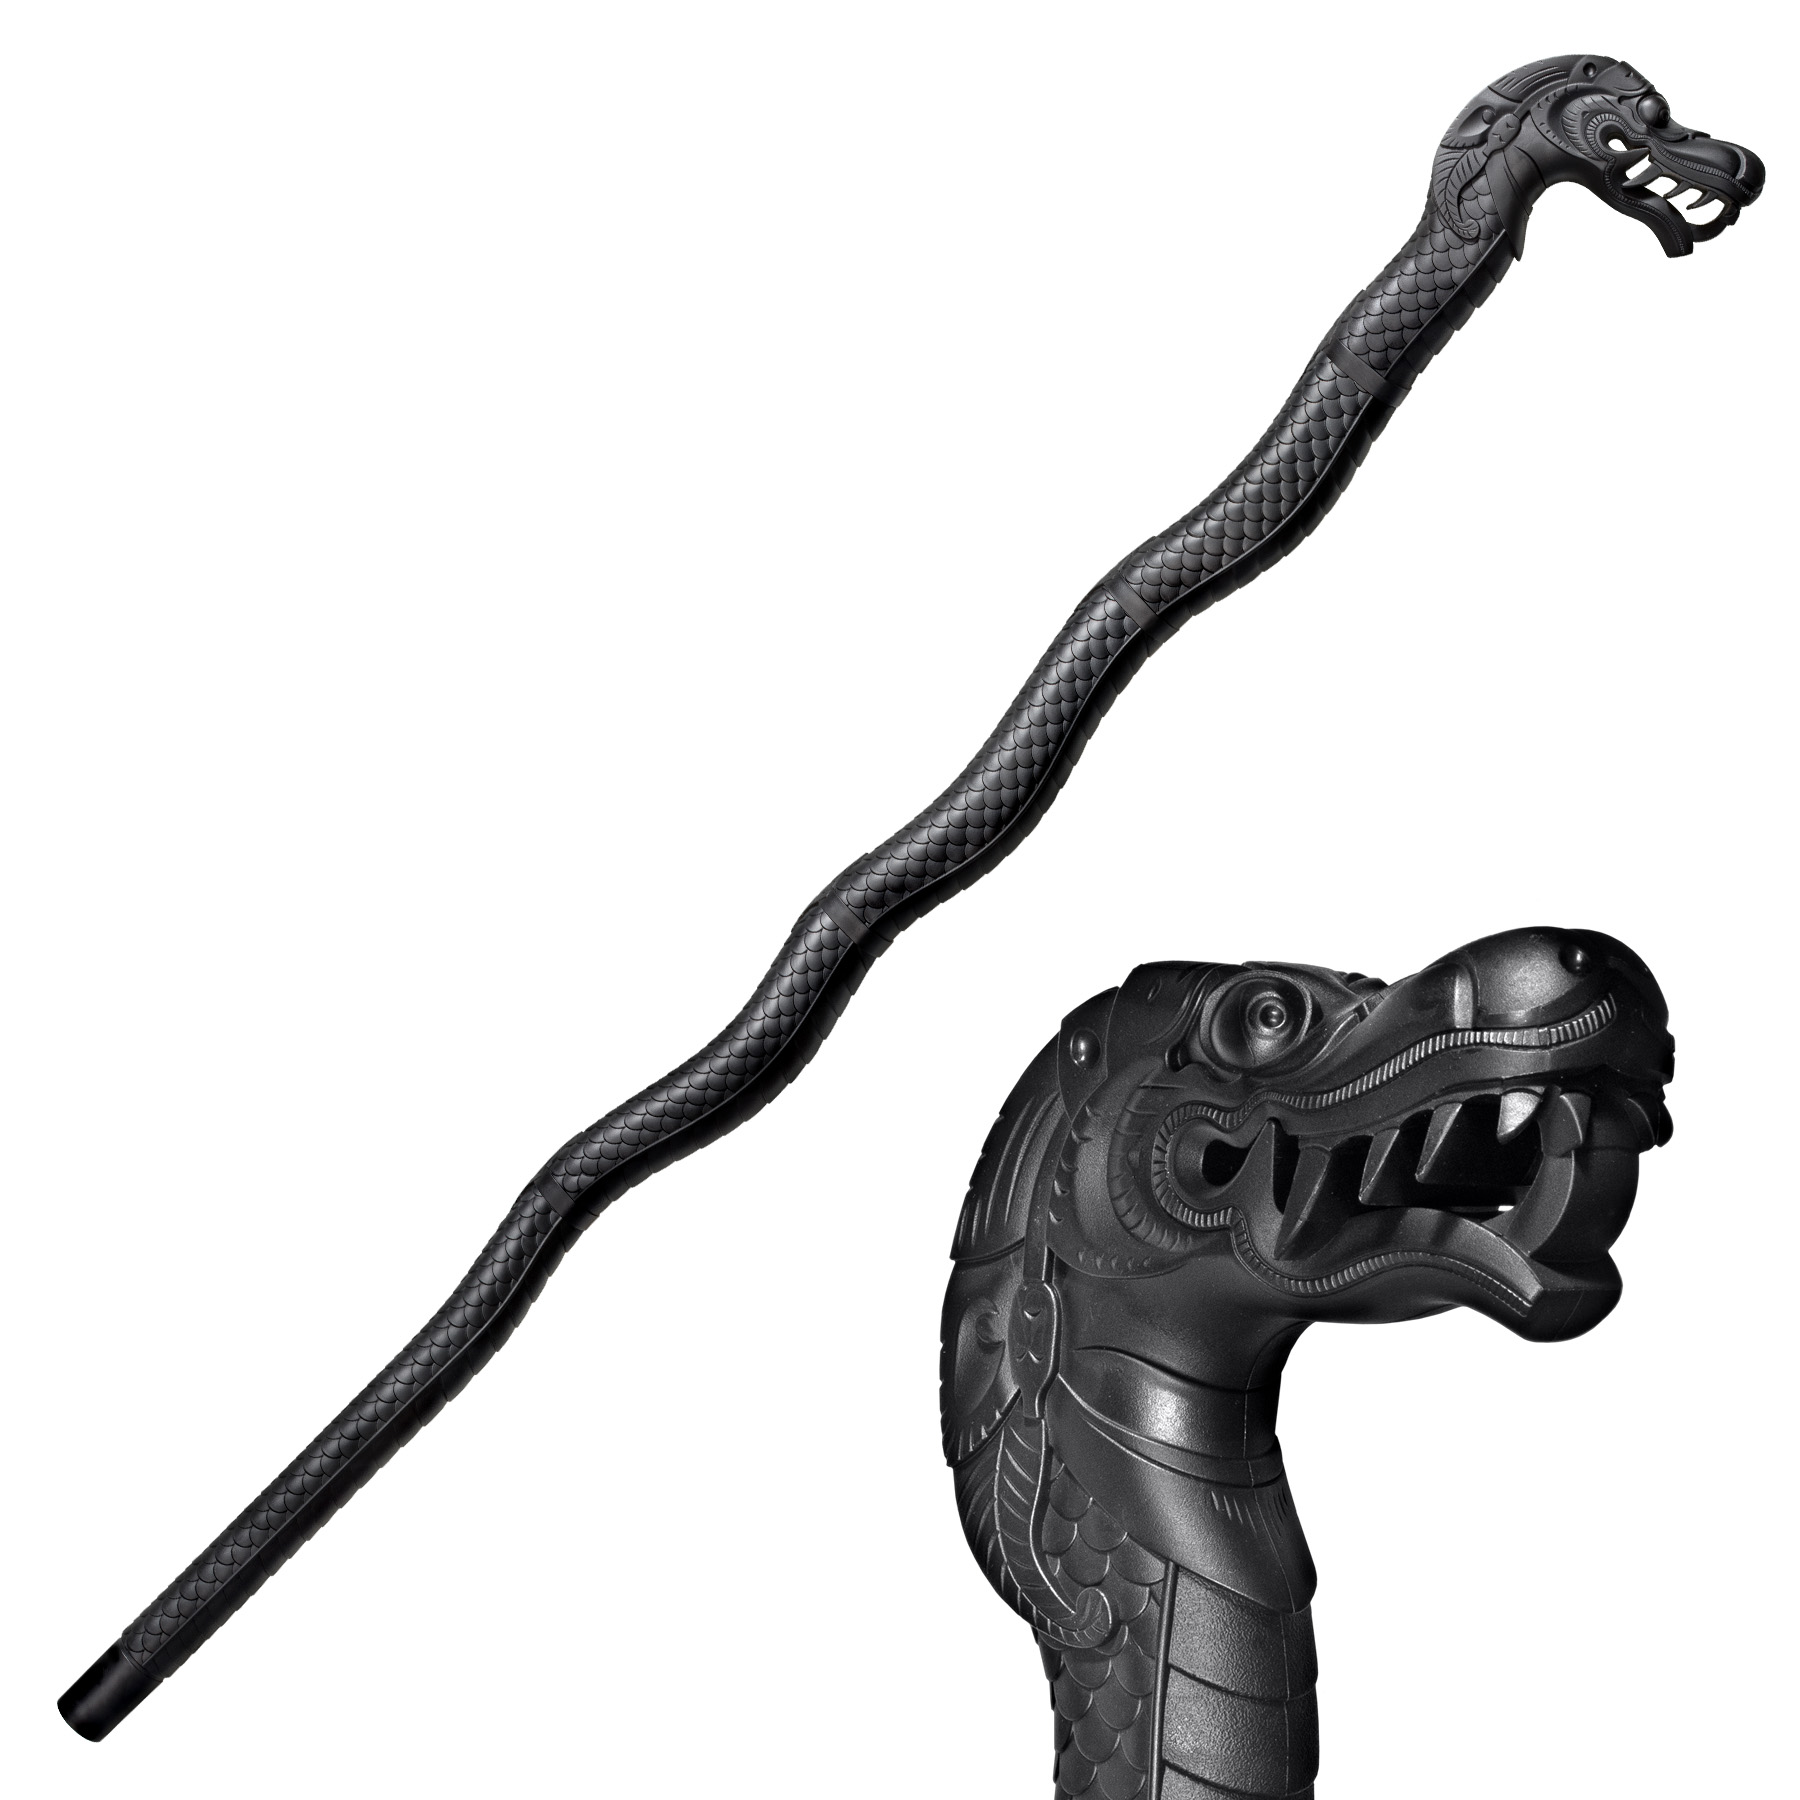 91PDRZ - COLD STEEL Dragon Walking Stick